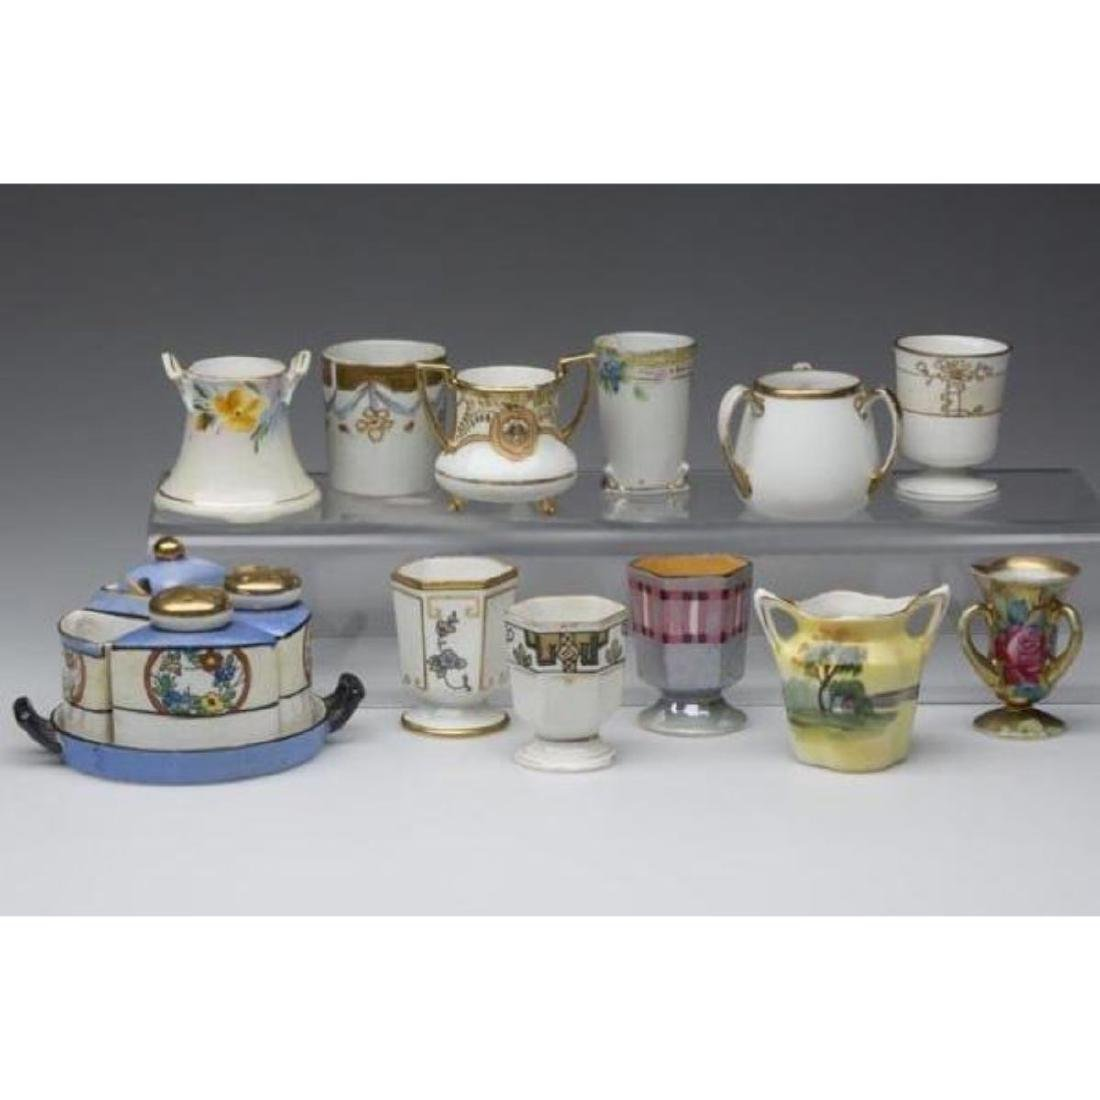 Pottery & Glass Vintage China Garden Tea Set Catalogues Will Be Sent Upon Request